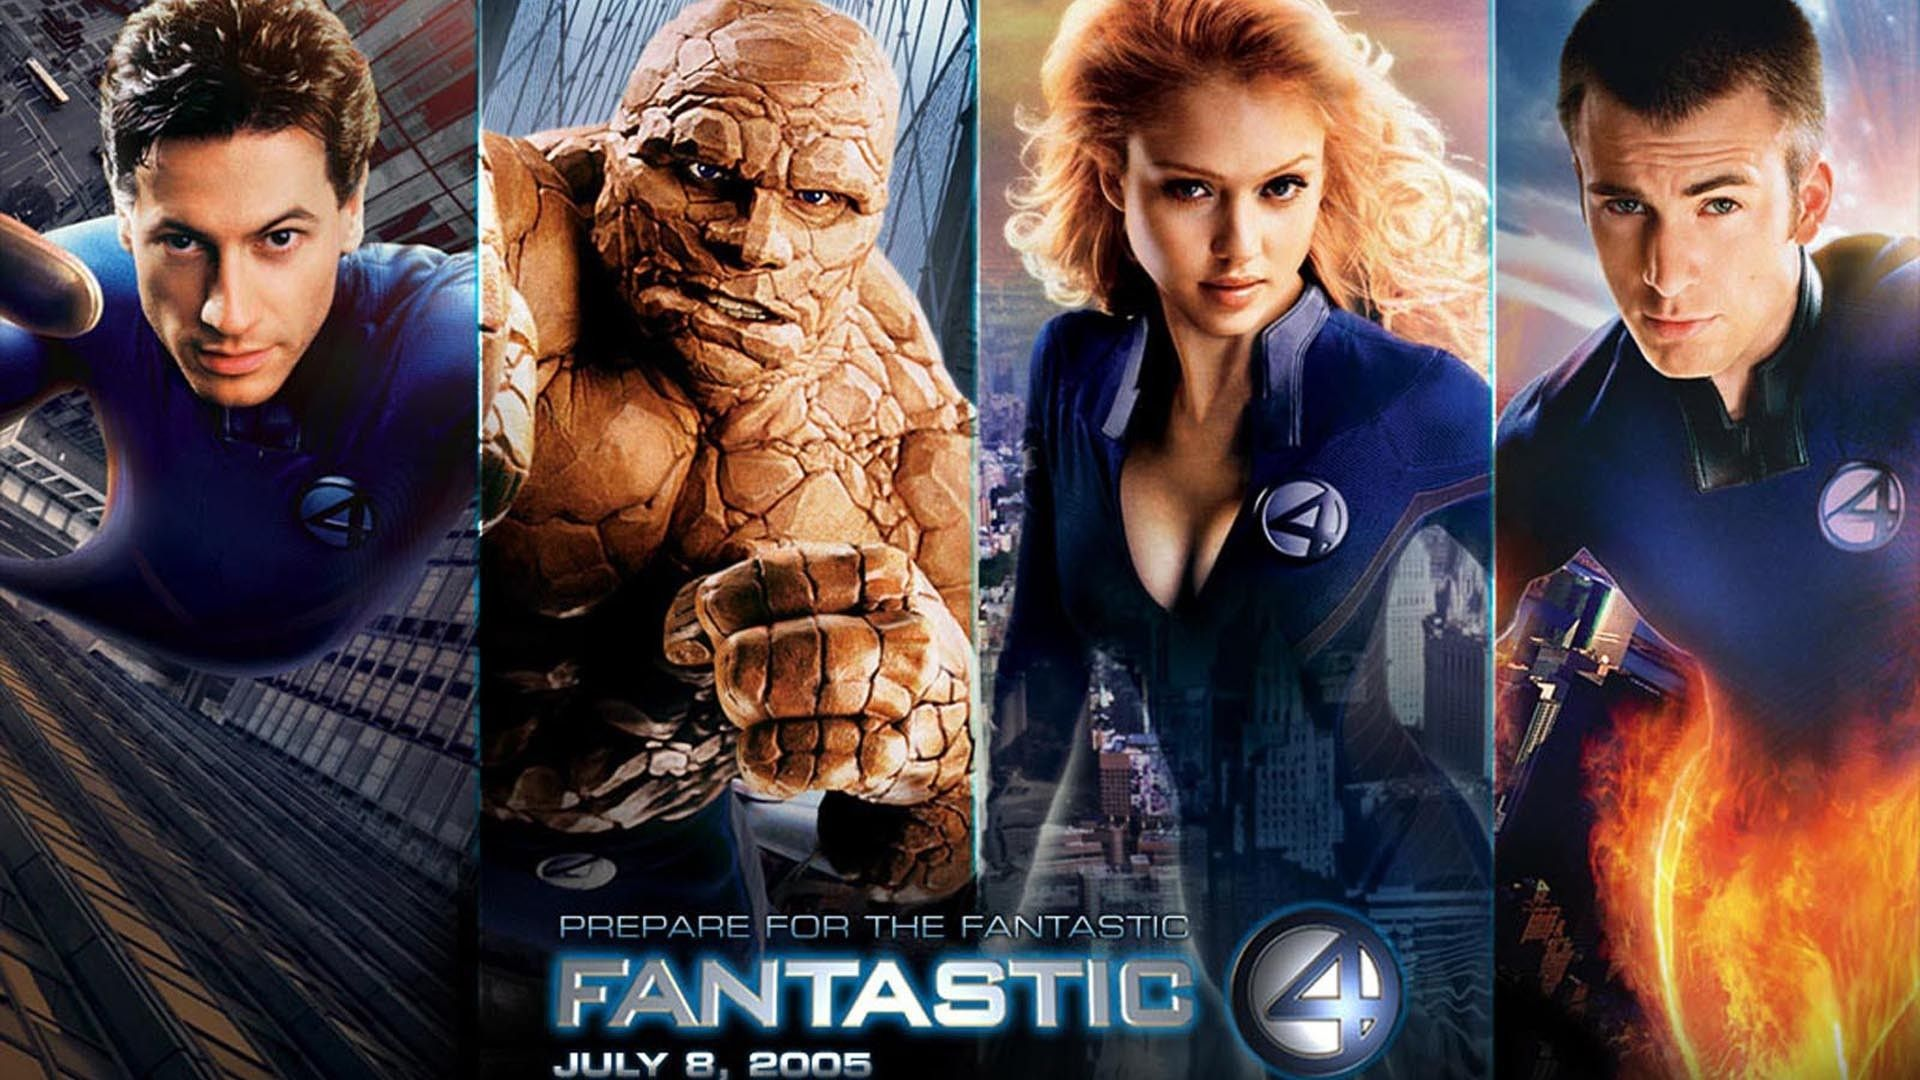 Fantastic Four Wallpaper Hd Fantastic Four Movie Fantastic Four Bloopers